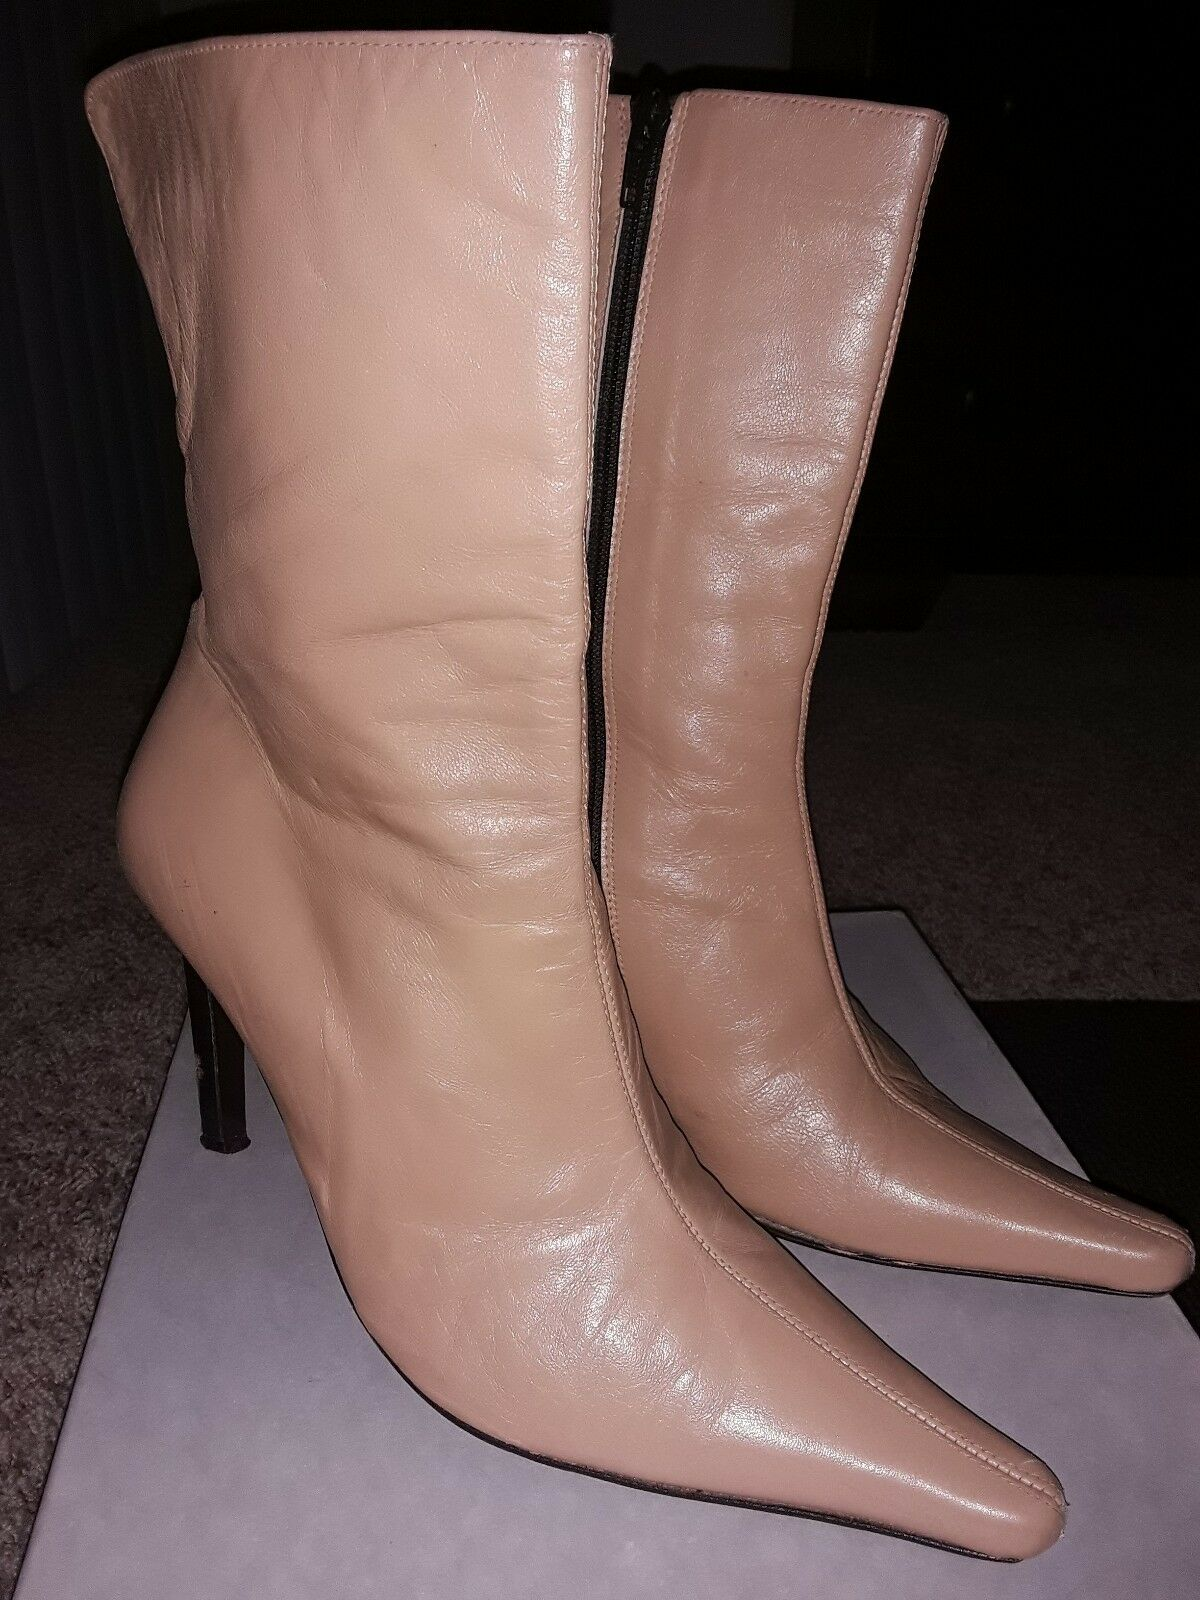 David Arron Beige Leather Booties Size 9 M